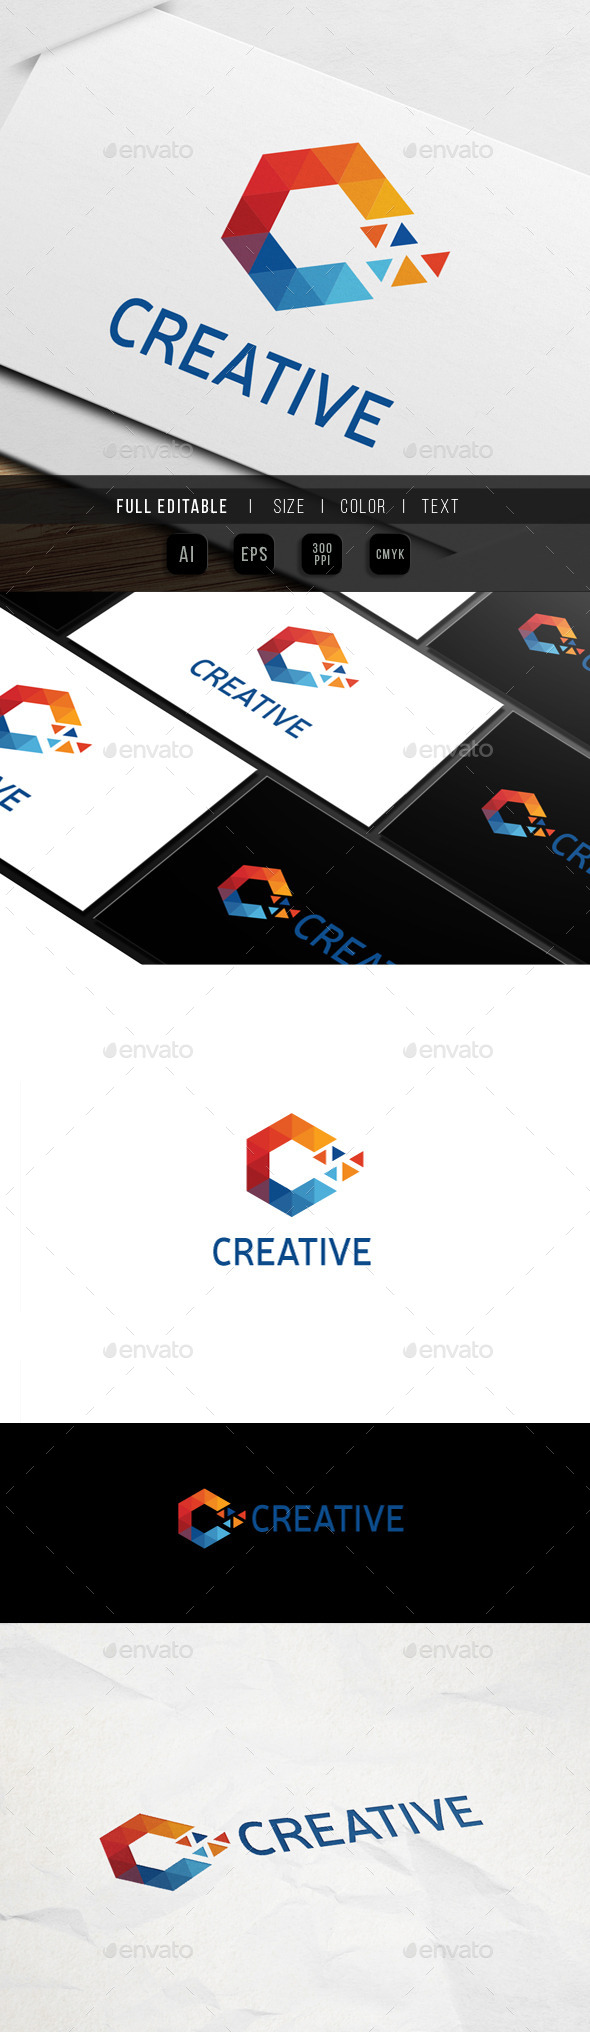 Letter C - Triangle Pixel - Letters Logo Templates